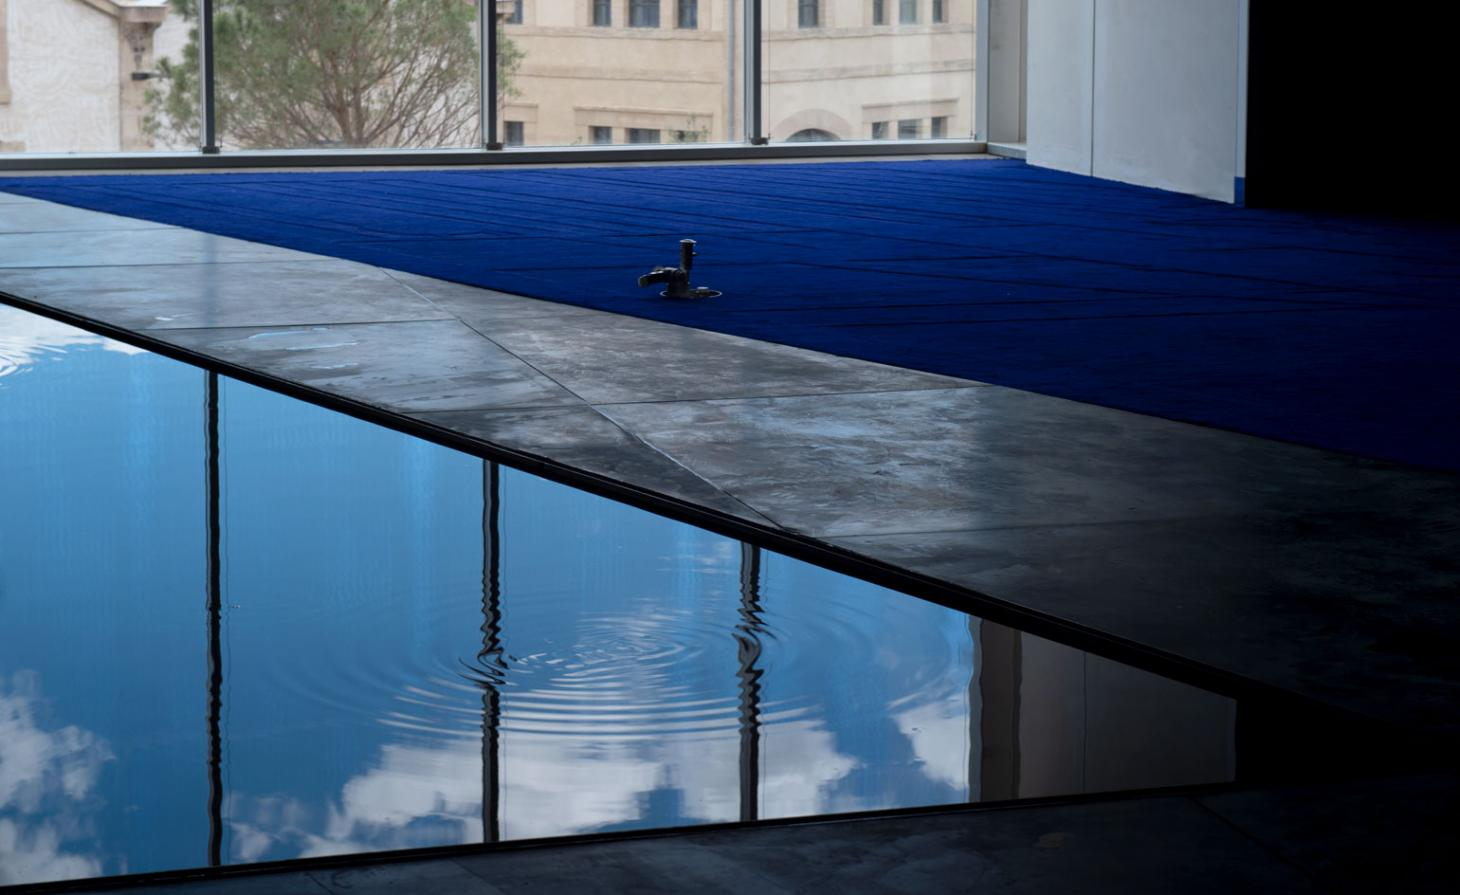 A swimming pool pictured against a glass window